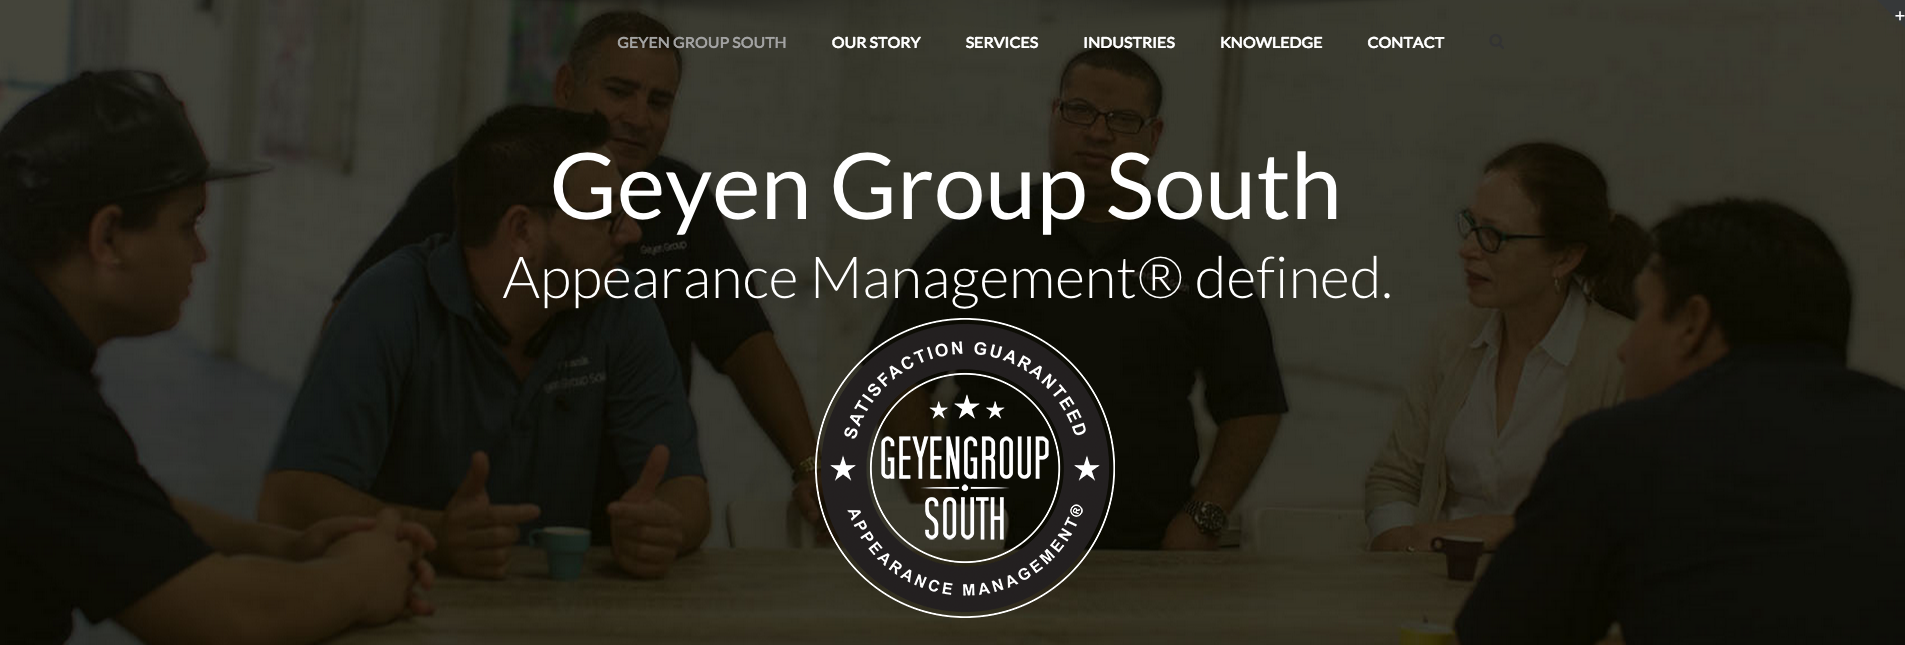 Geyen Group South - Commercial Carpet Cleaning